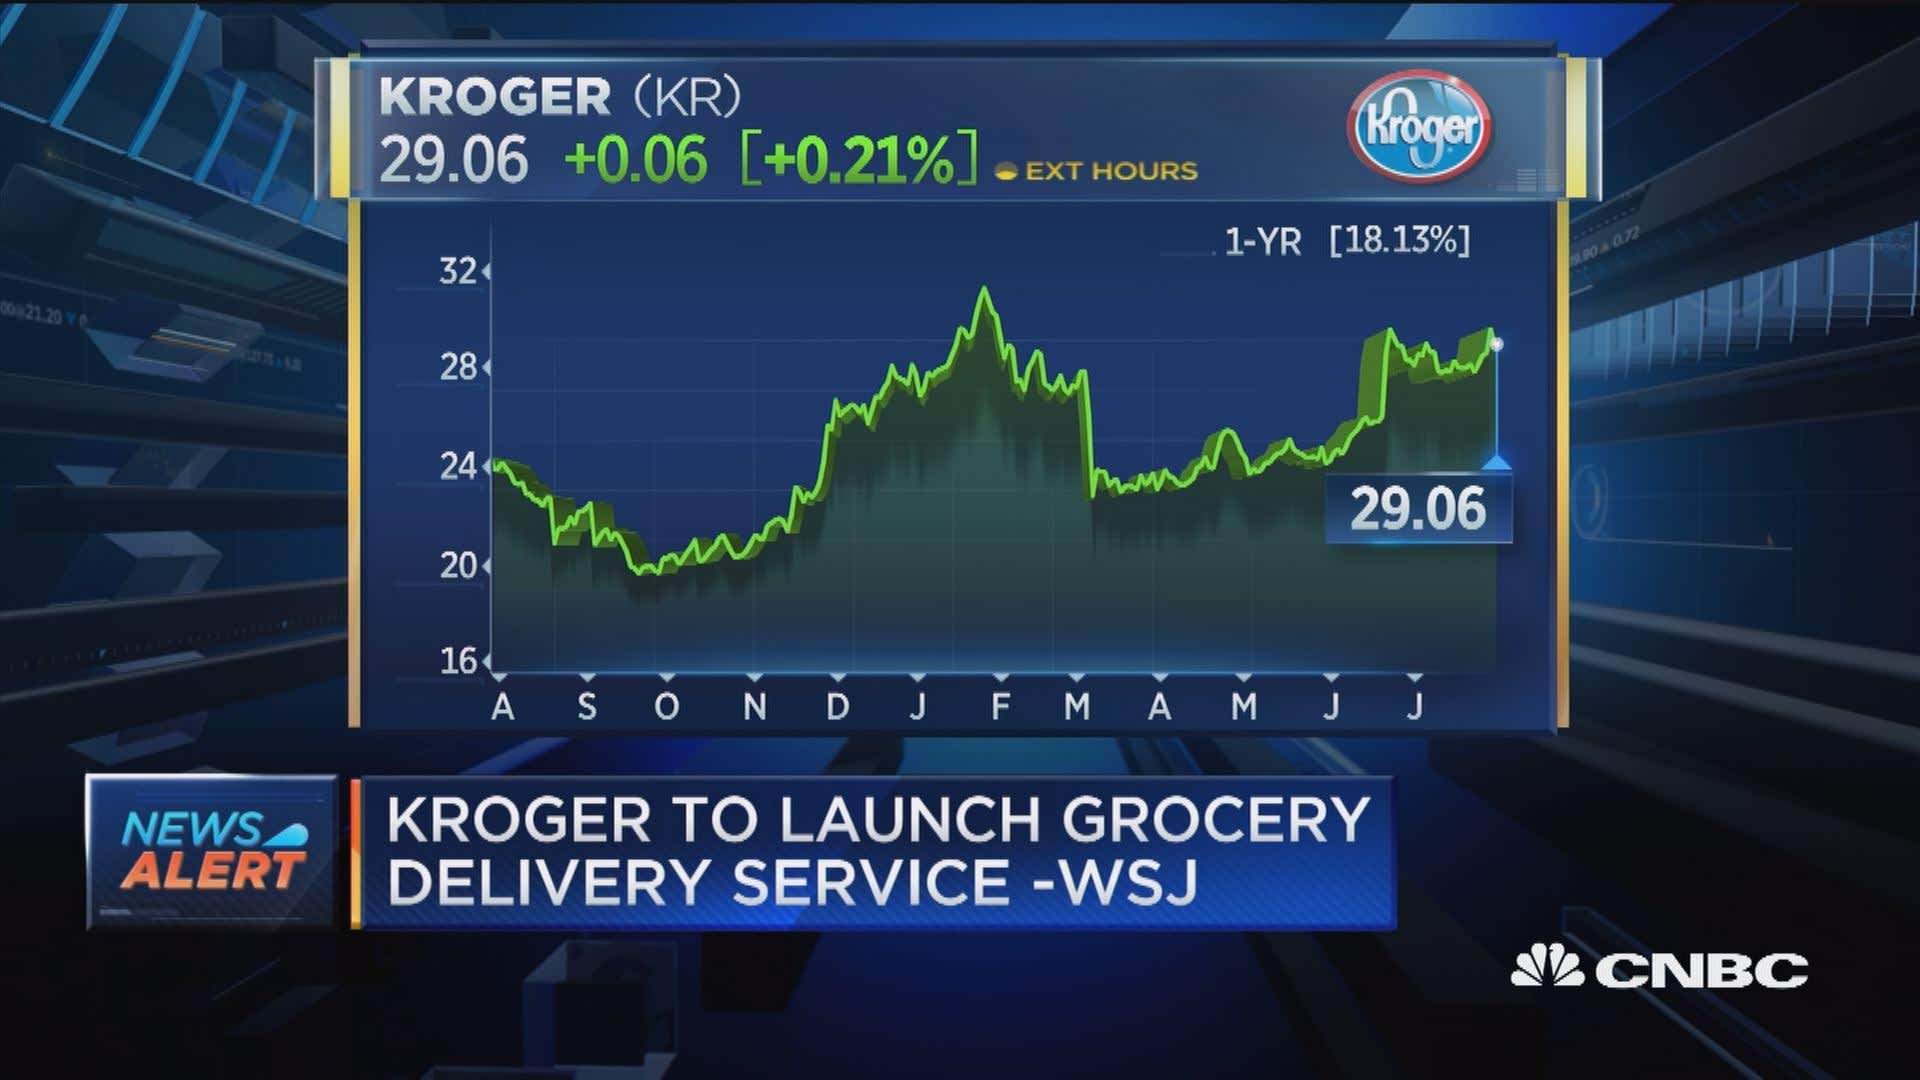 Kroger to launch grocery delivery service